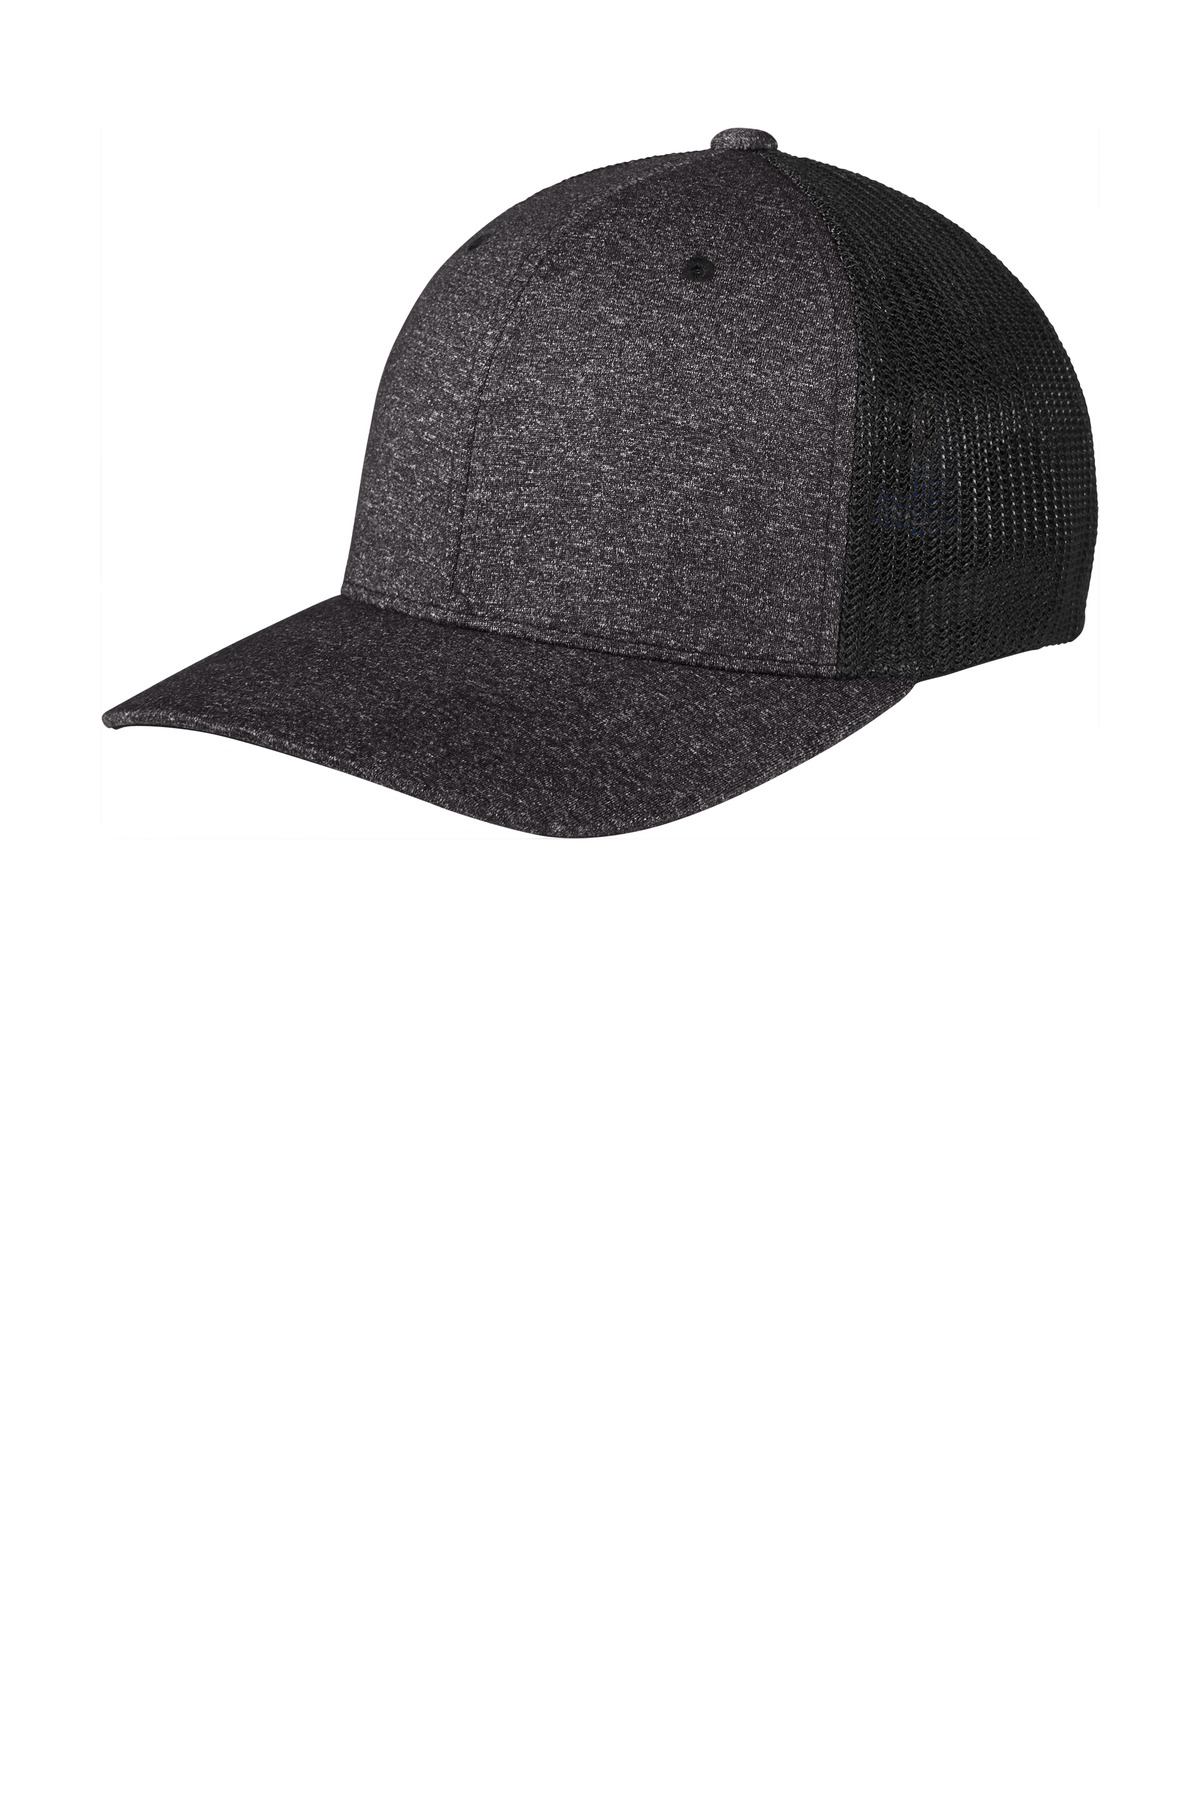 Port Authority  ®  Flexfit  ®  Melange Mesh Back Trucker Cap C302 - Black/ Dark Charcoal Heather